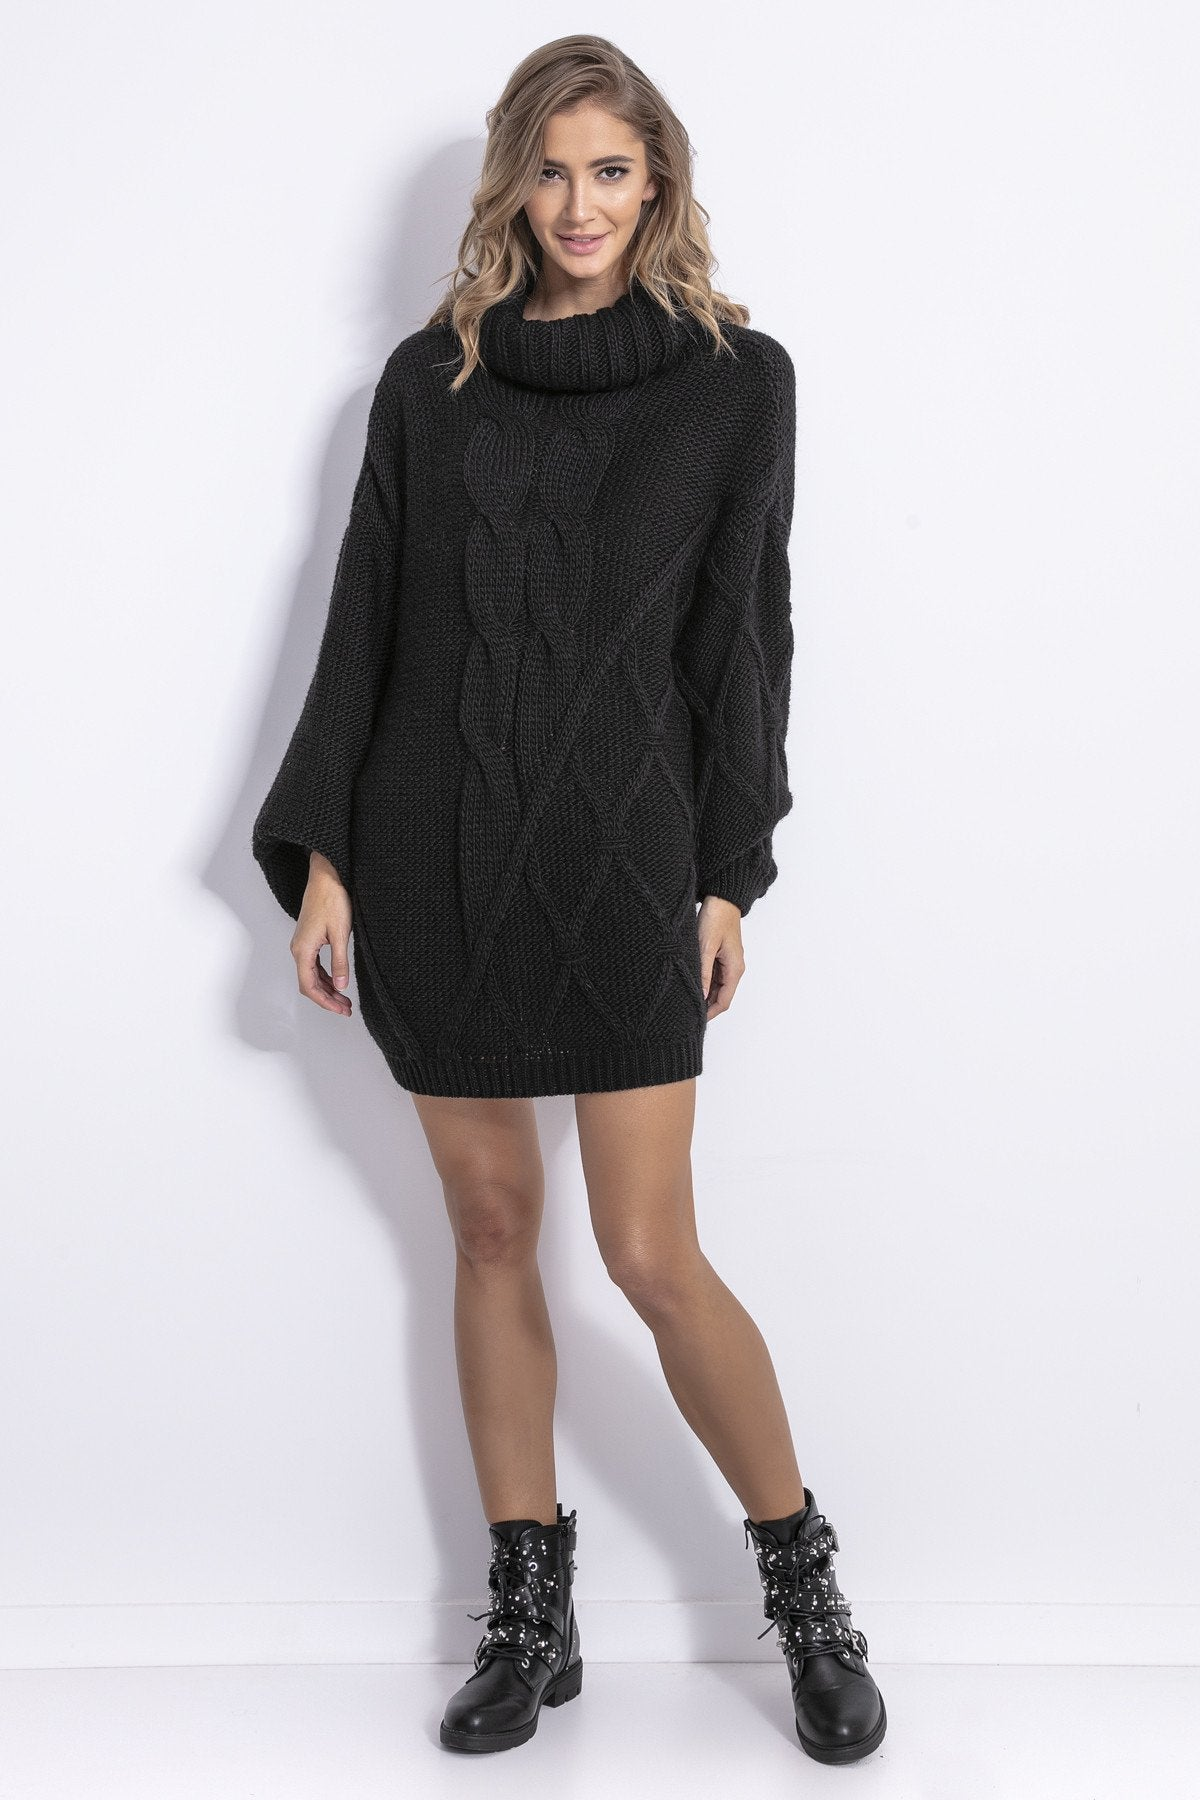 Turtleneck Sweater Dress - LK's Boutique